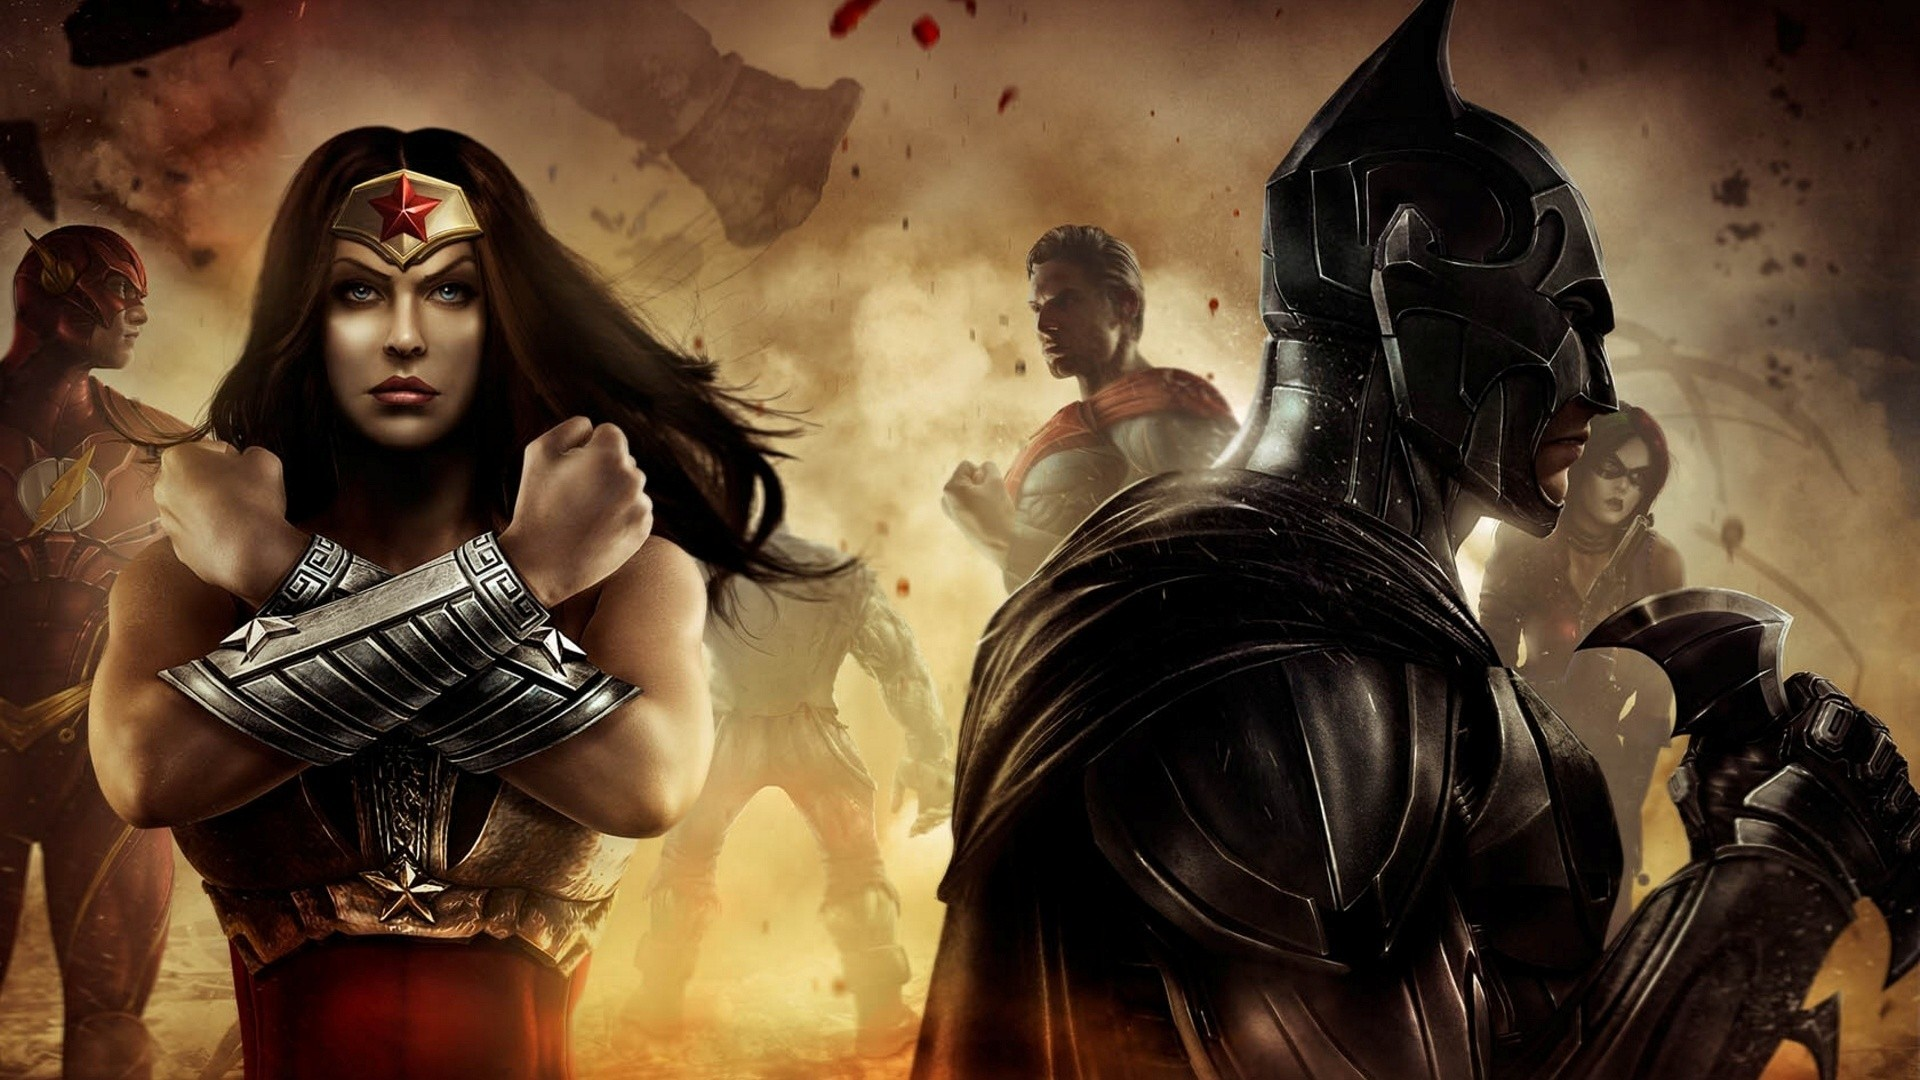 1920x1080 Wonder Woman Injustice Wallpaper HD #9bT